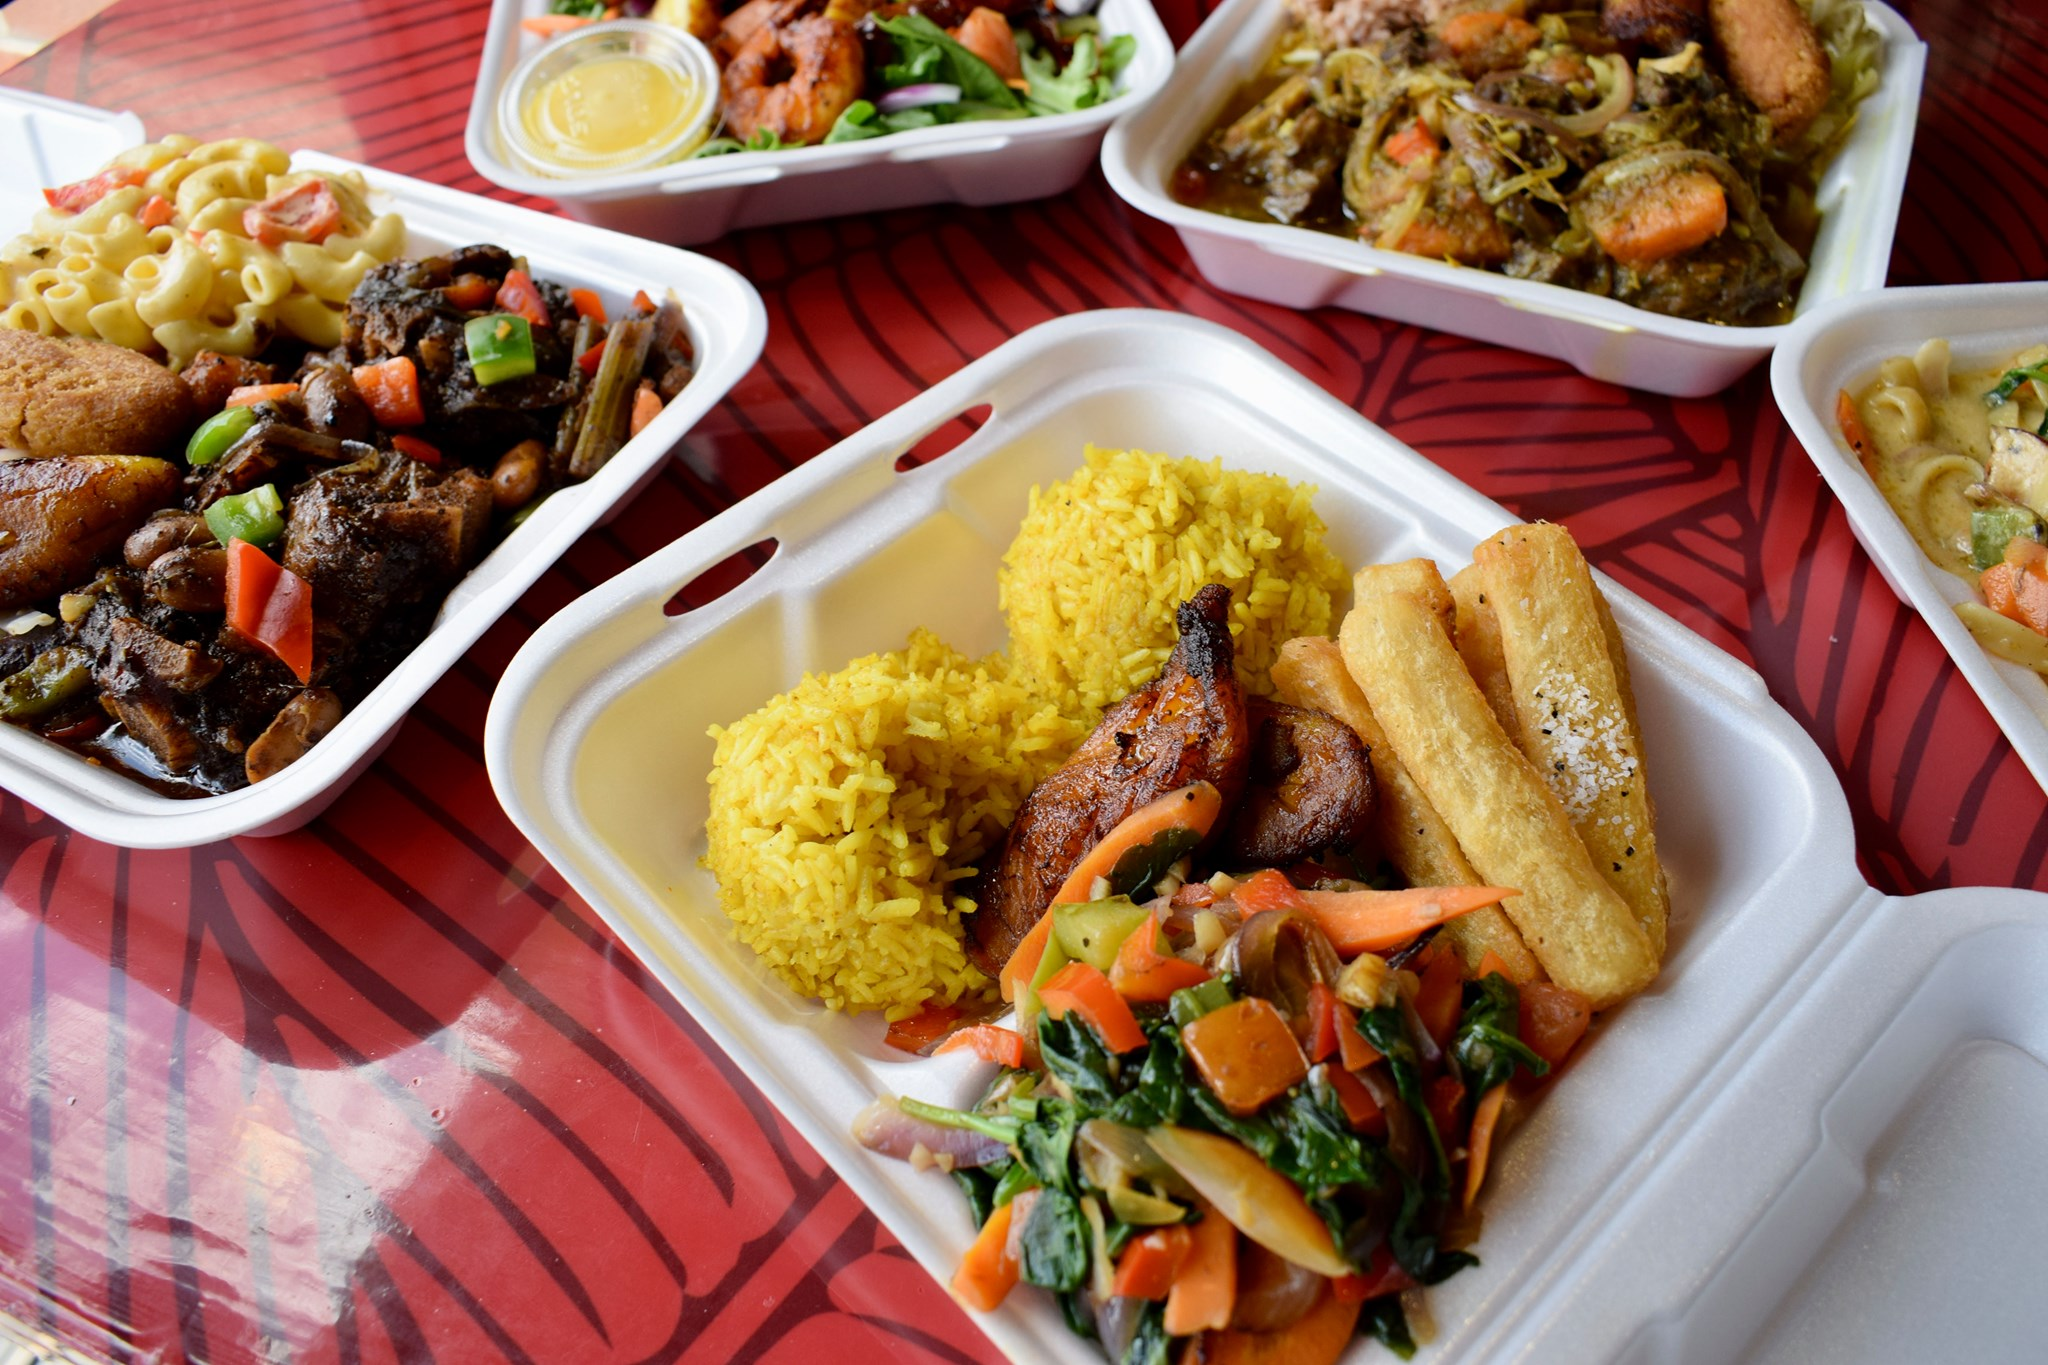 Takeout dishes in Styrofoam containers with rice, vegetables, meats, and more.